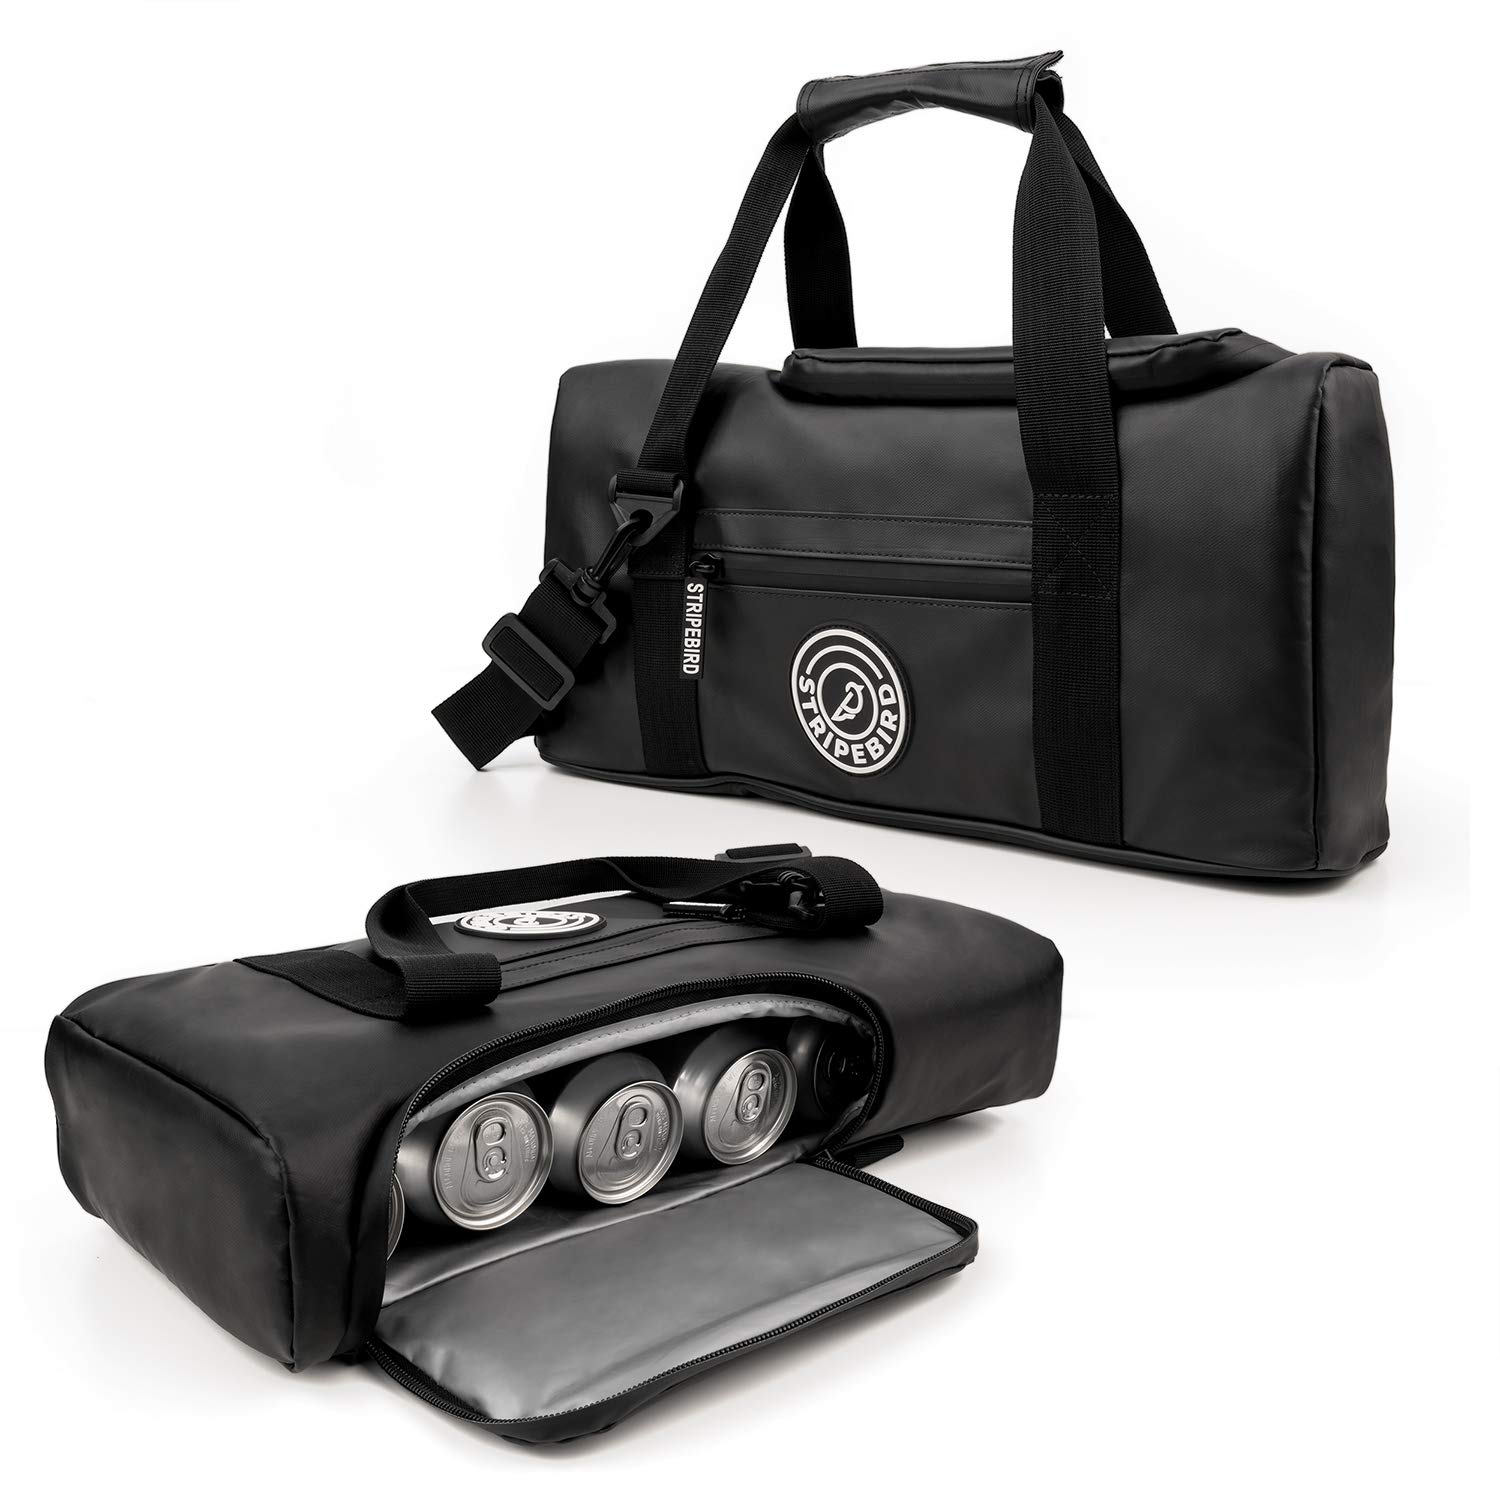 Stripebird - Golf Performance Insulated Cooler Bag for Golfers - Perfectly Fits a 6 Pack of Cans - Beverage and Drink Storage for Golfing - Easily Fits on Golf Cart for Golfers